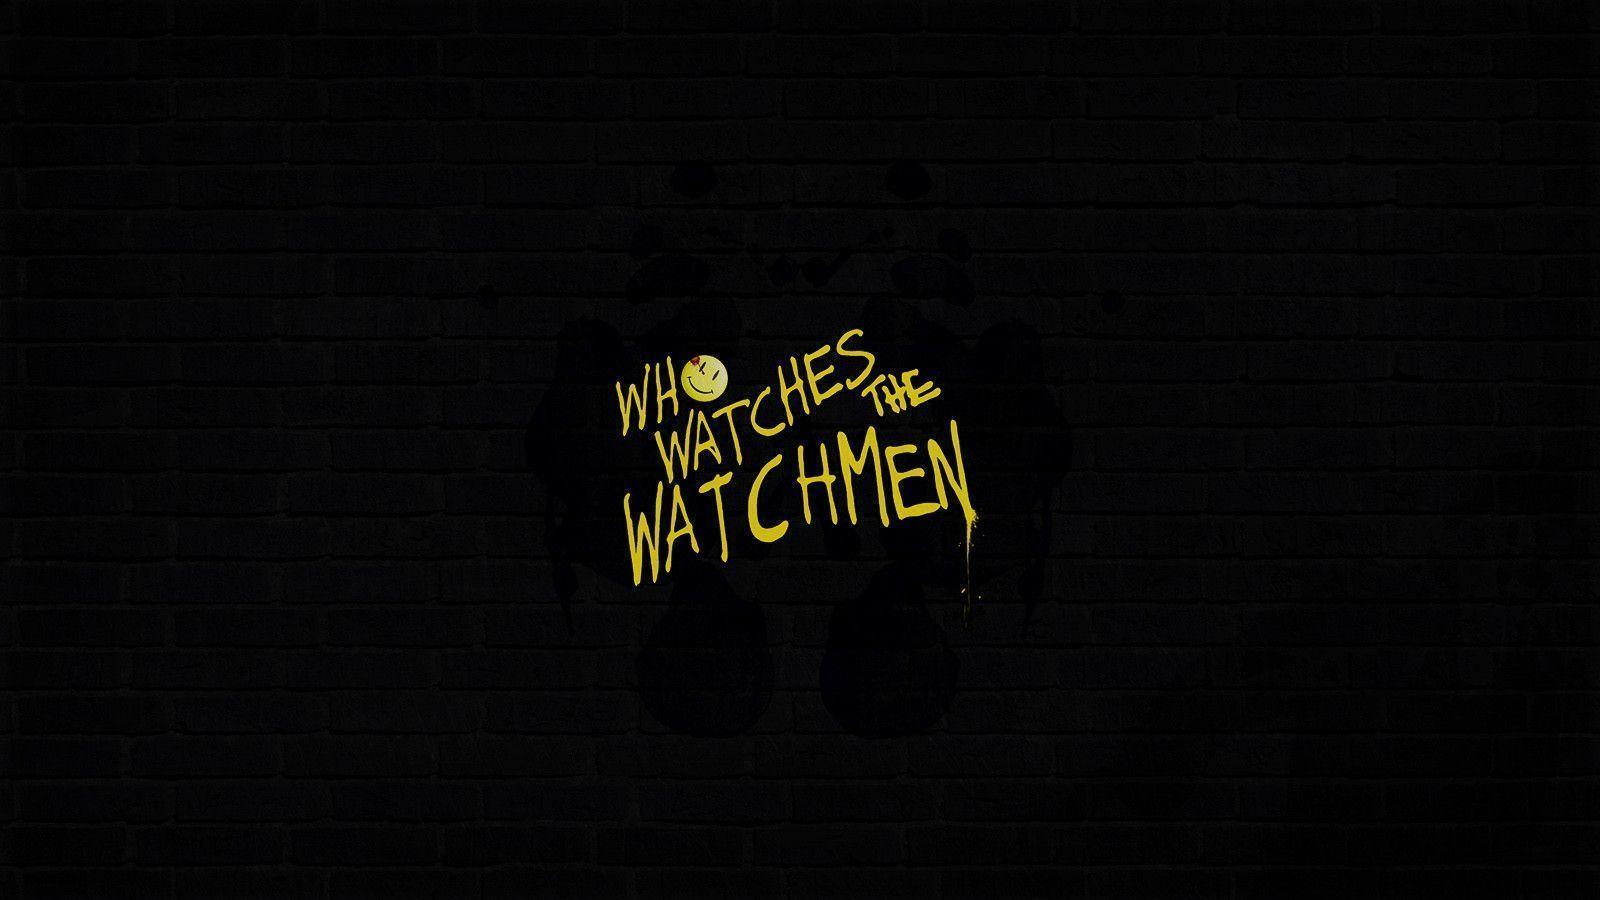 the watchmen wallpapers wallpaper cave